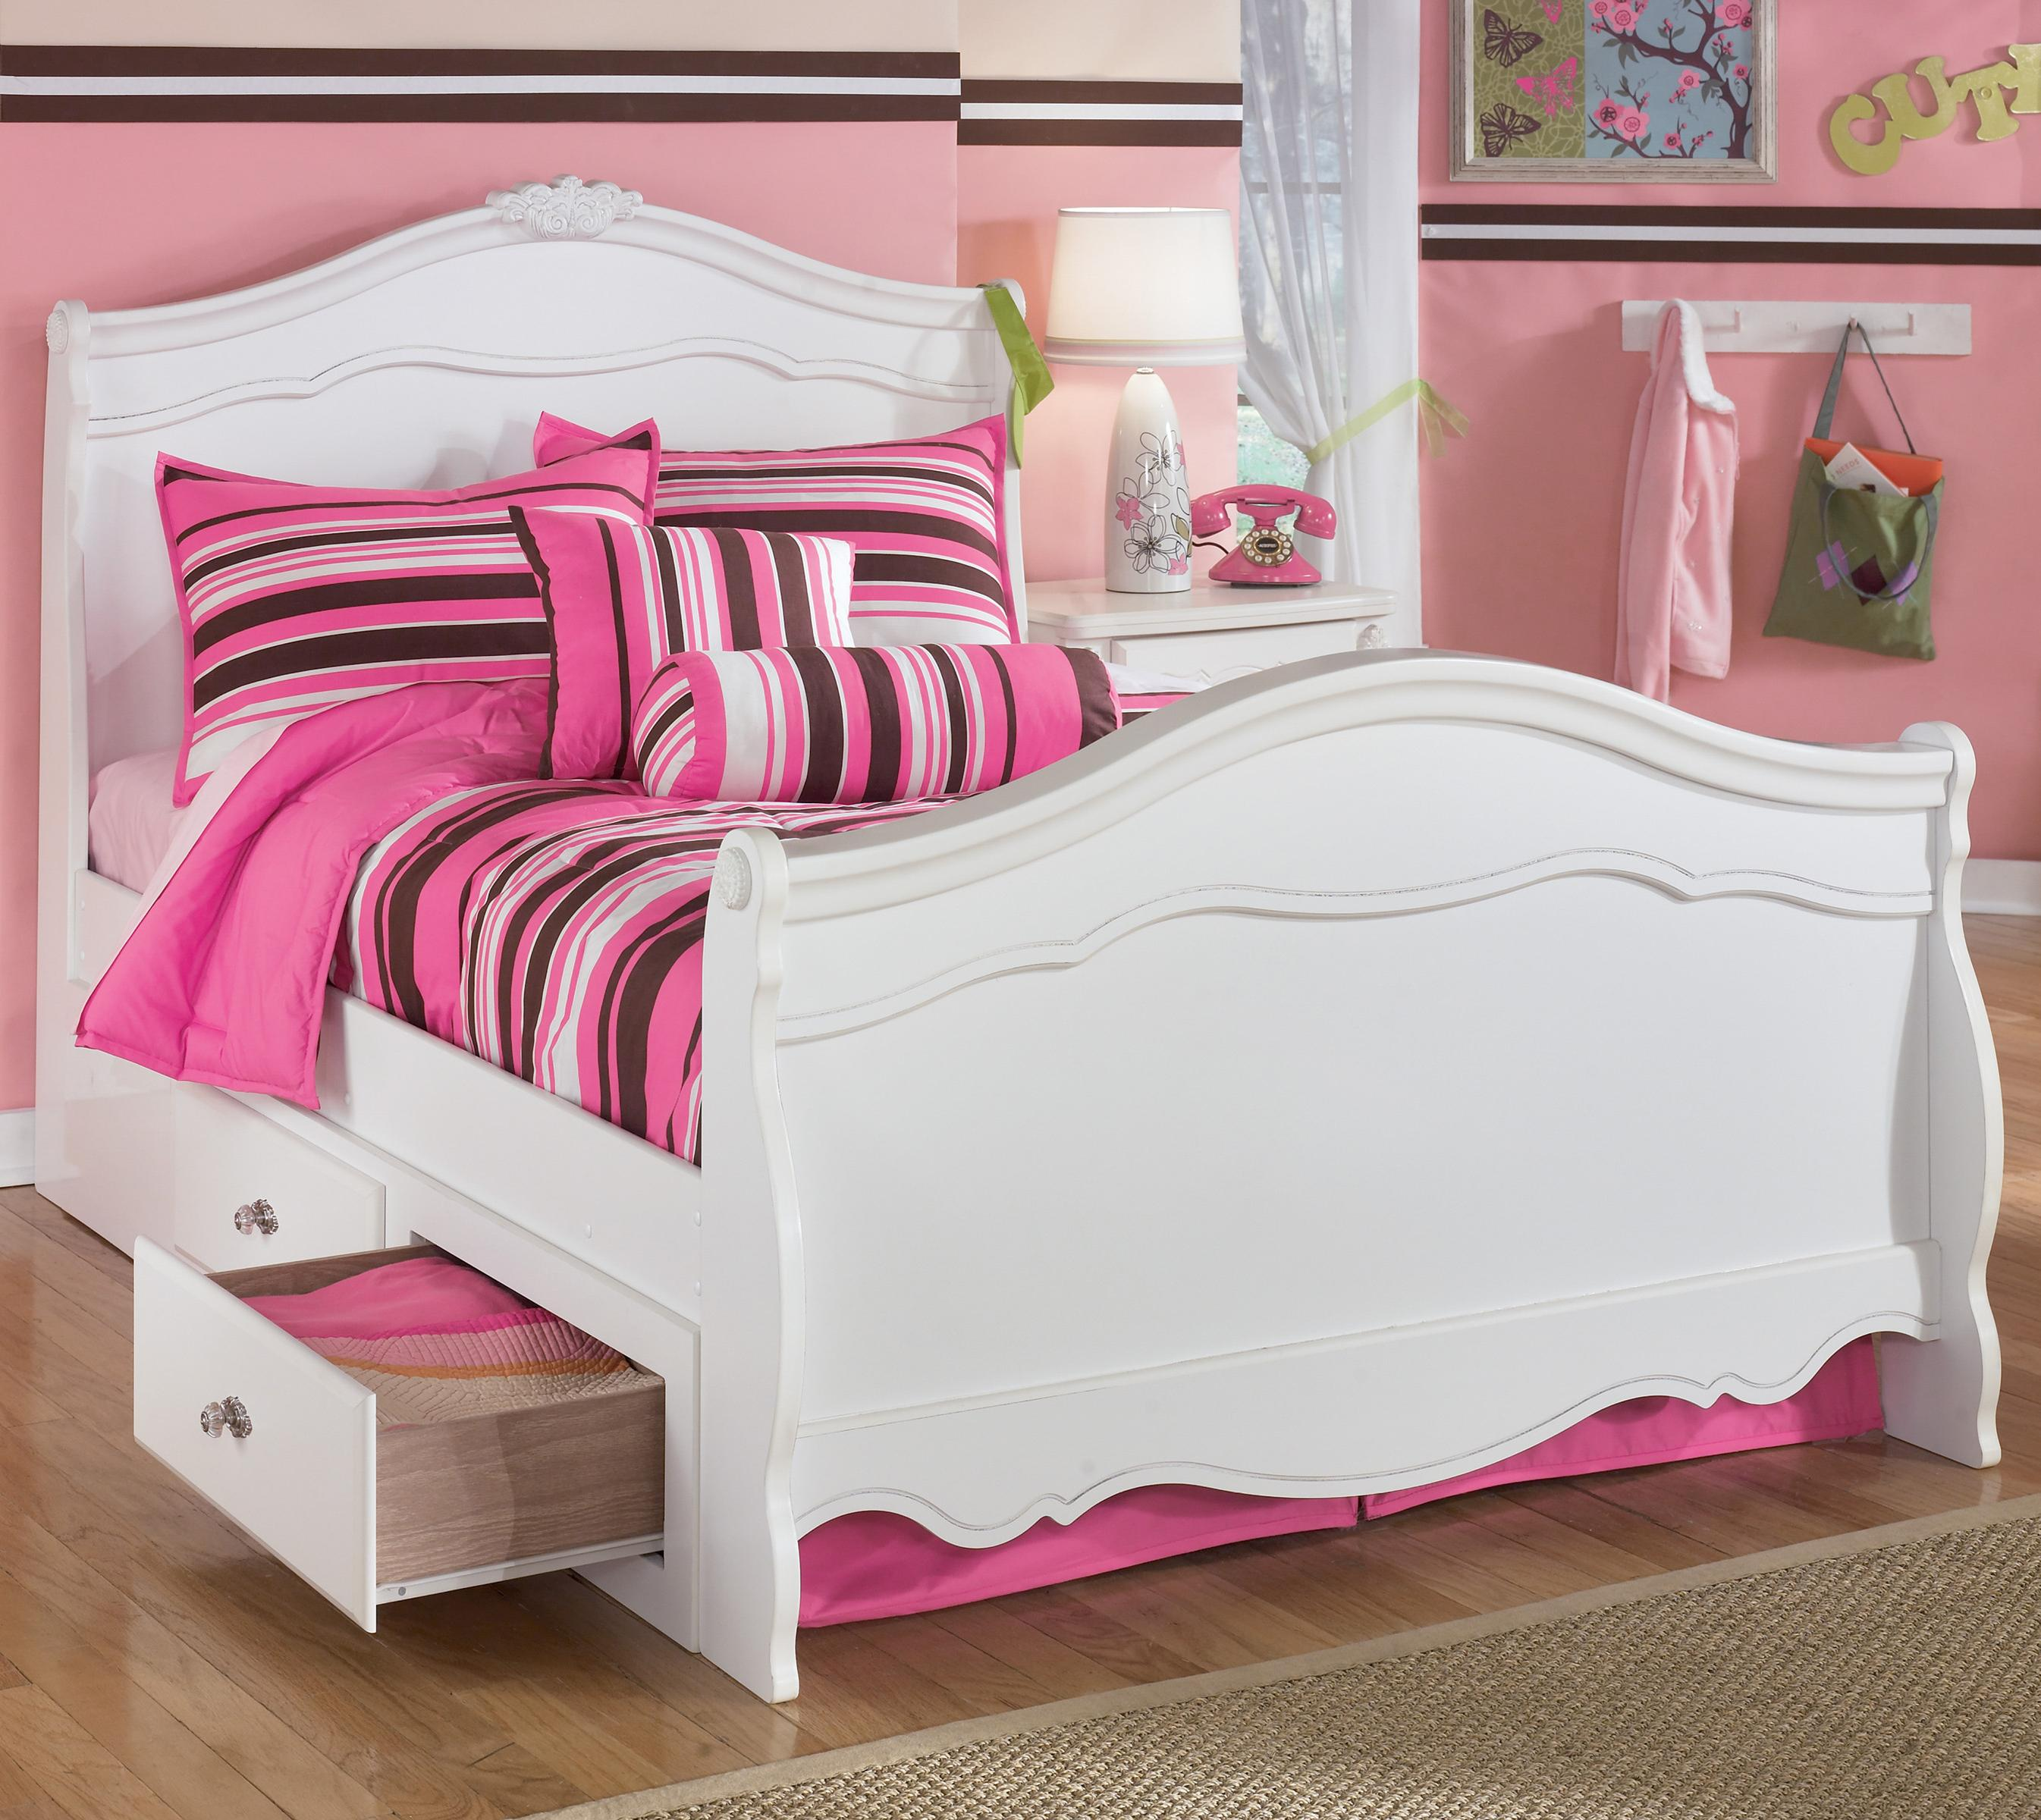 Full sleigh bed with under bed storage by signature design - Bed with storage underneath ...